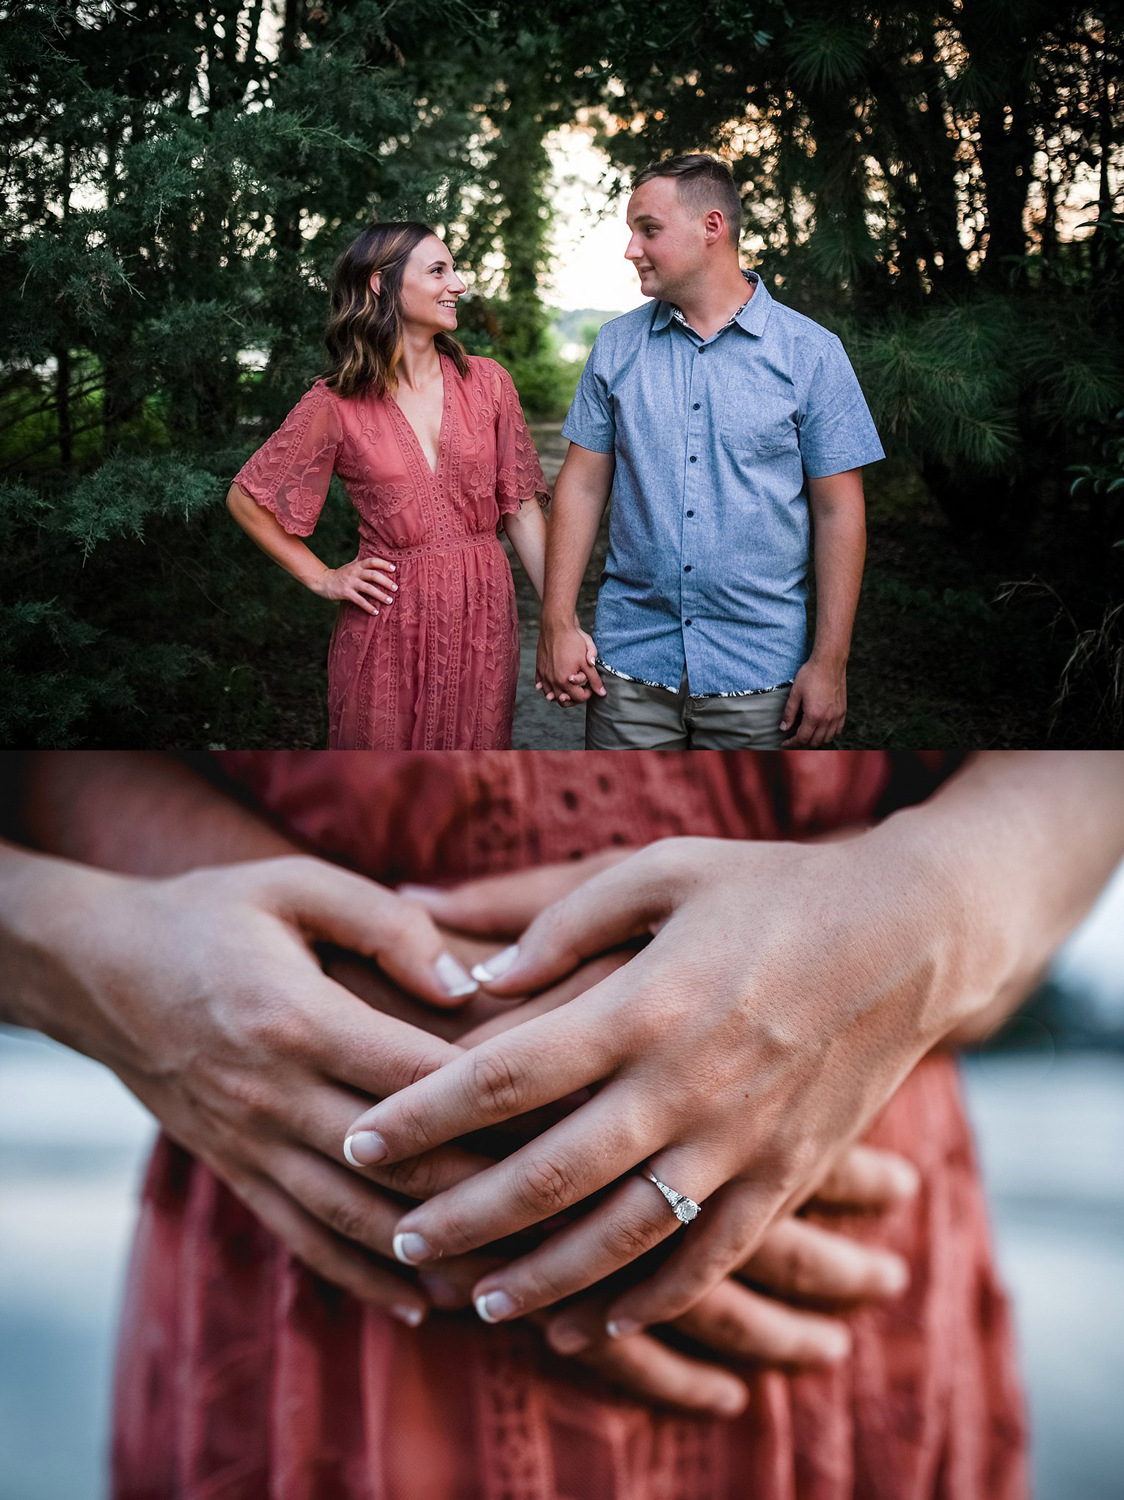 sunset-state-park-engagement-session-romantic-photos-by-melissa-bliss-photography-virginia-beach.jpg